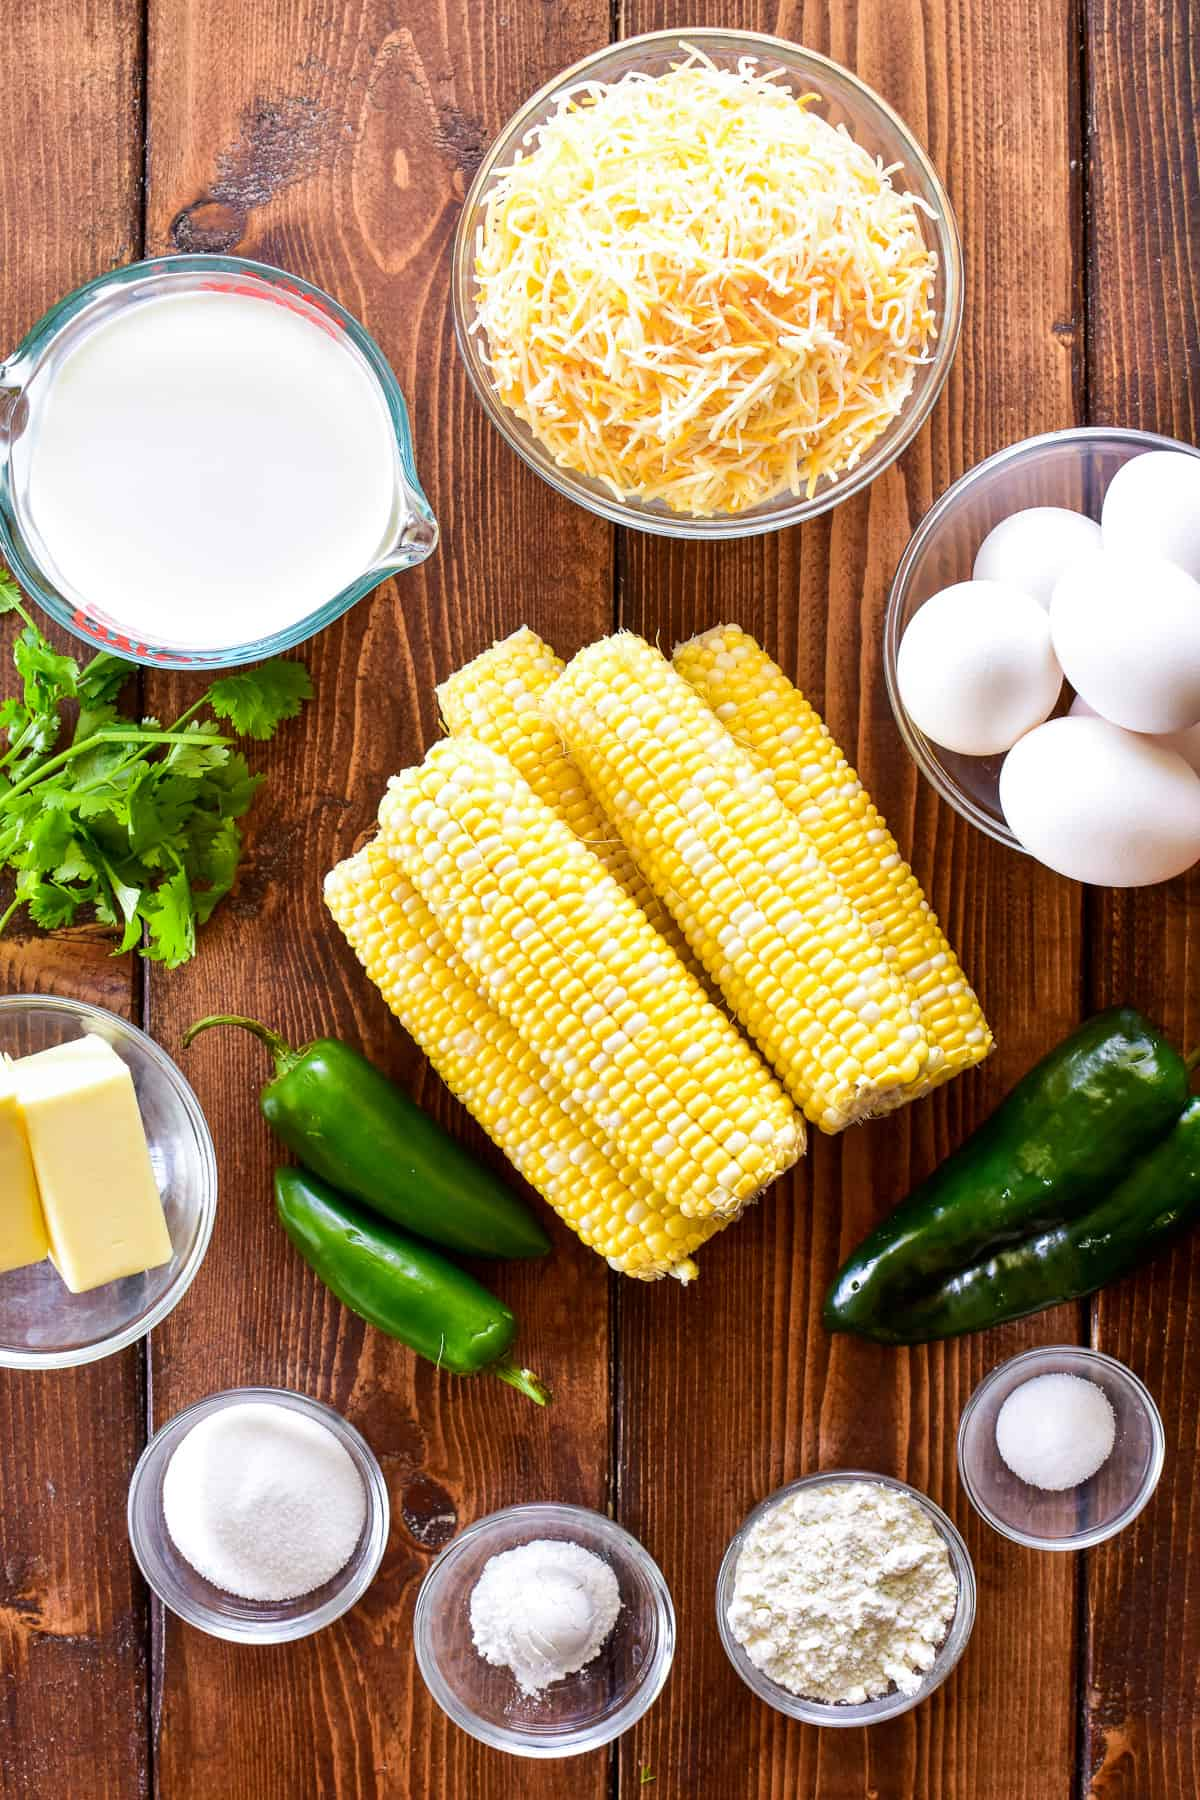 Corn Pudding ingredients on a wooden board